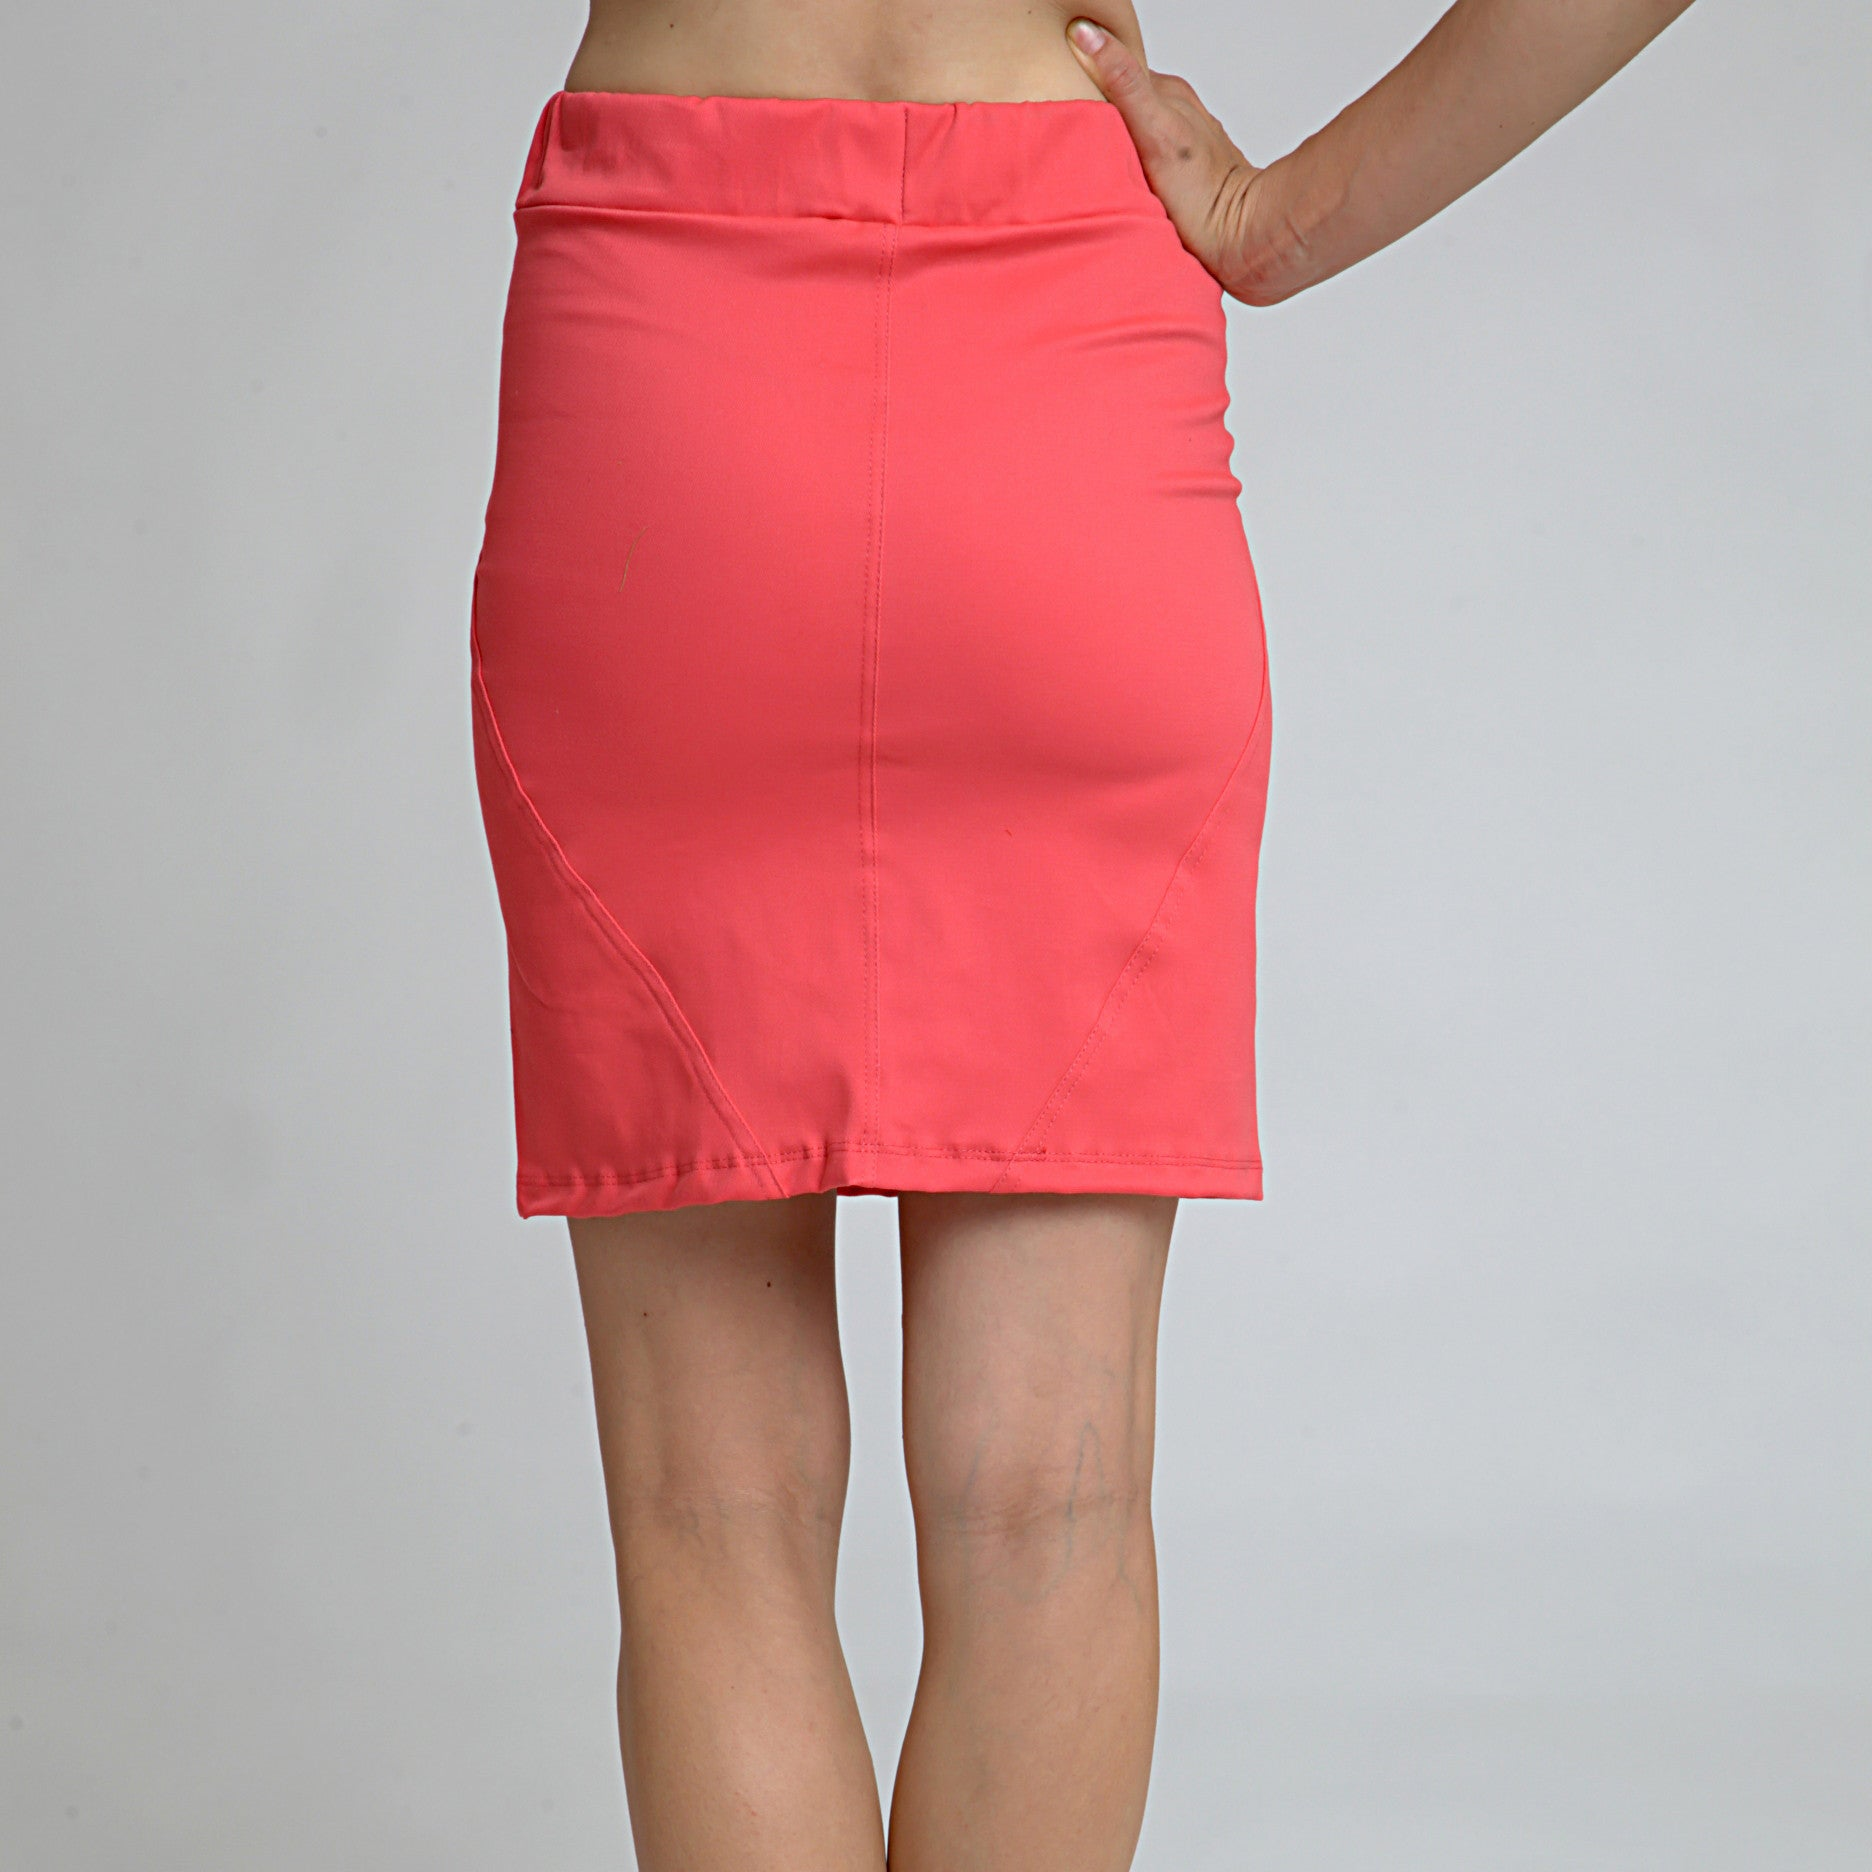 Cotton Skirt - DuendeFashion  - 3